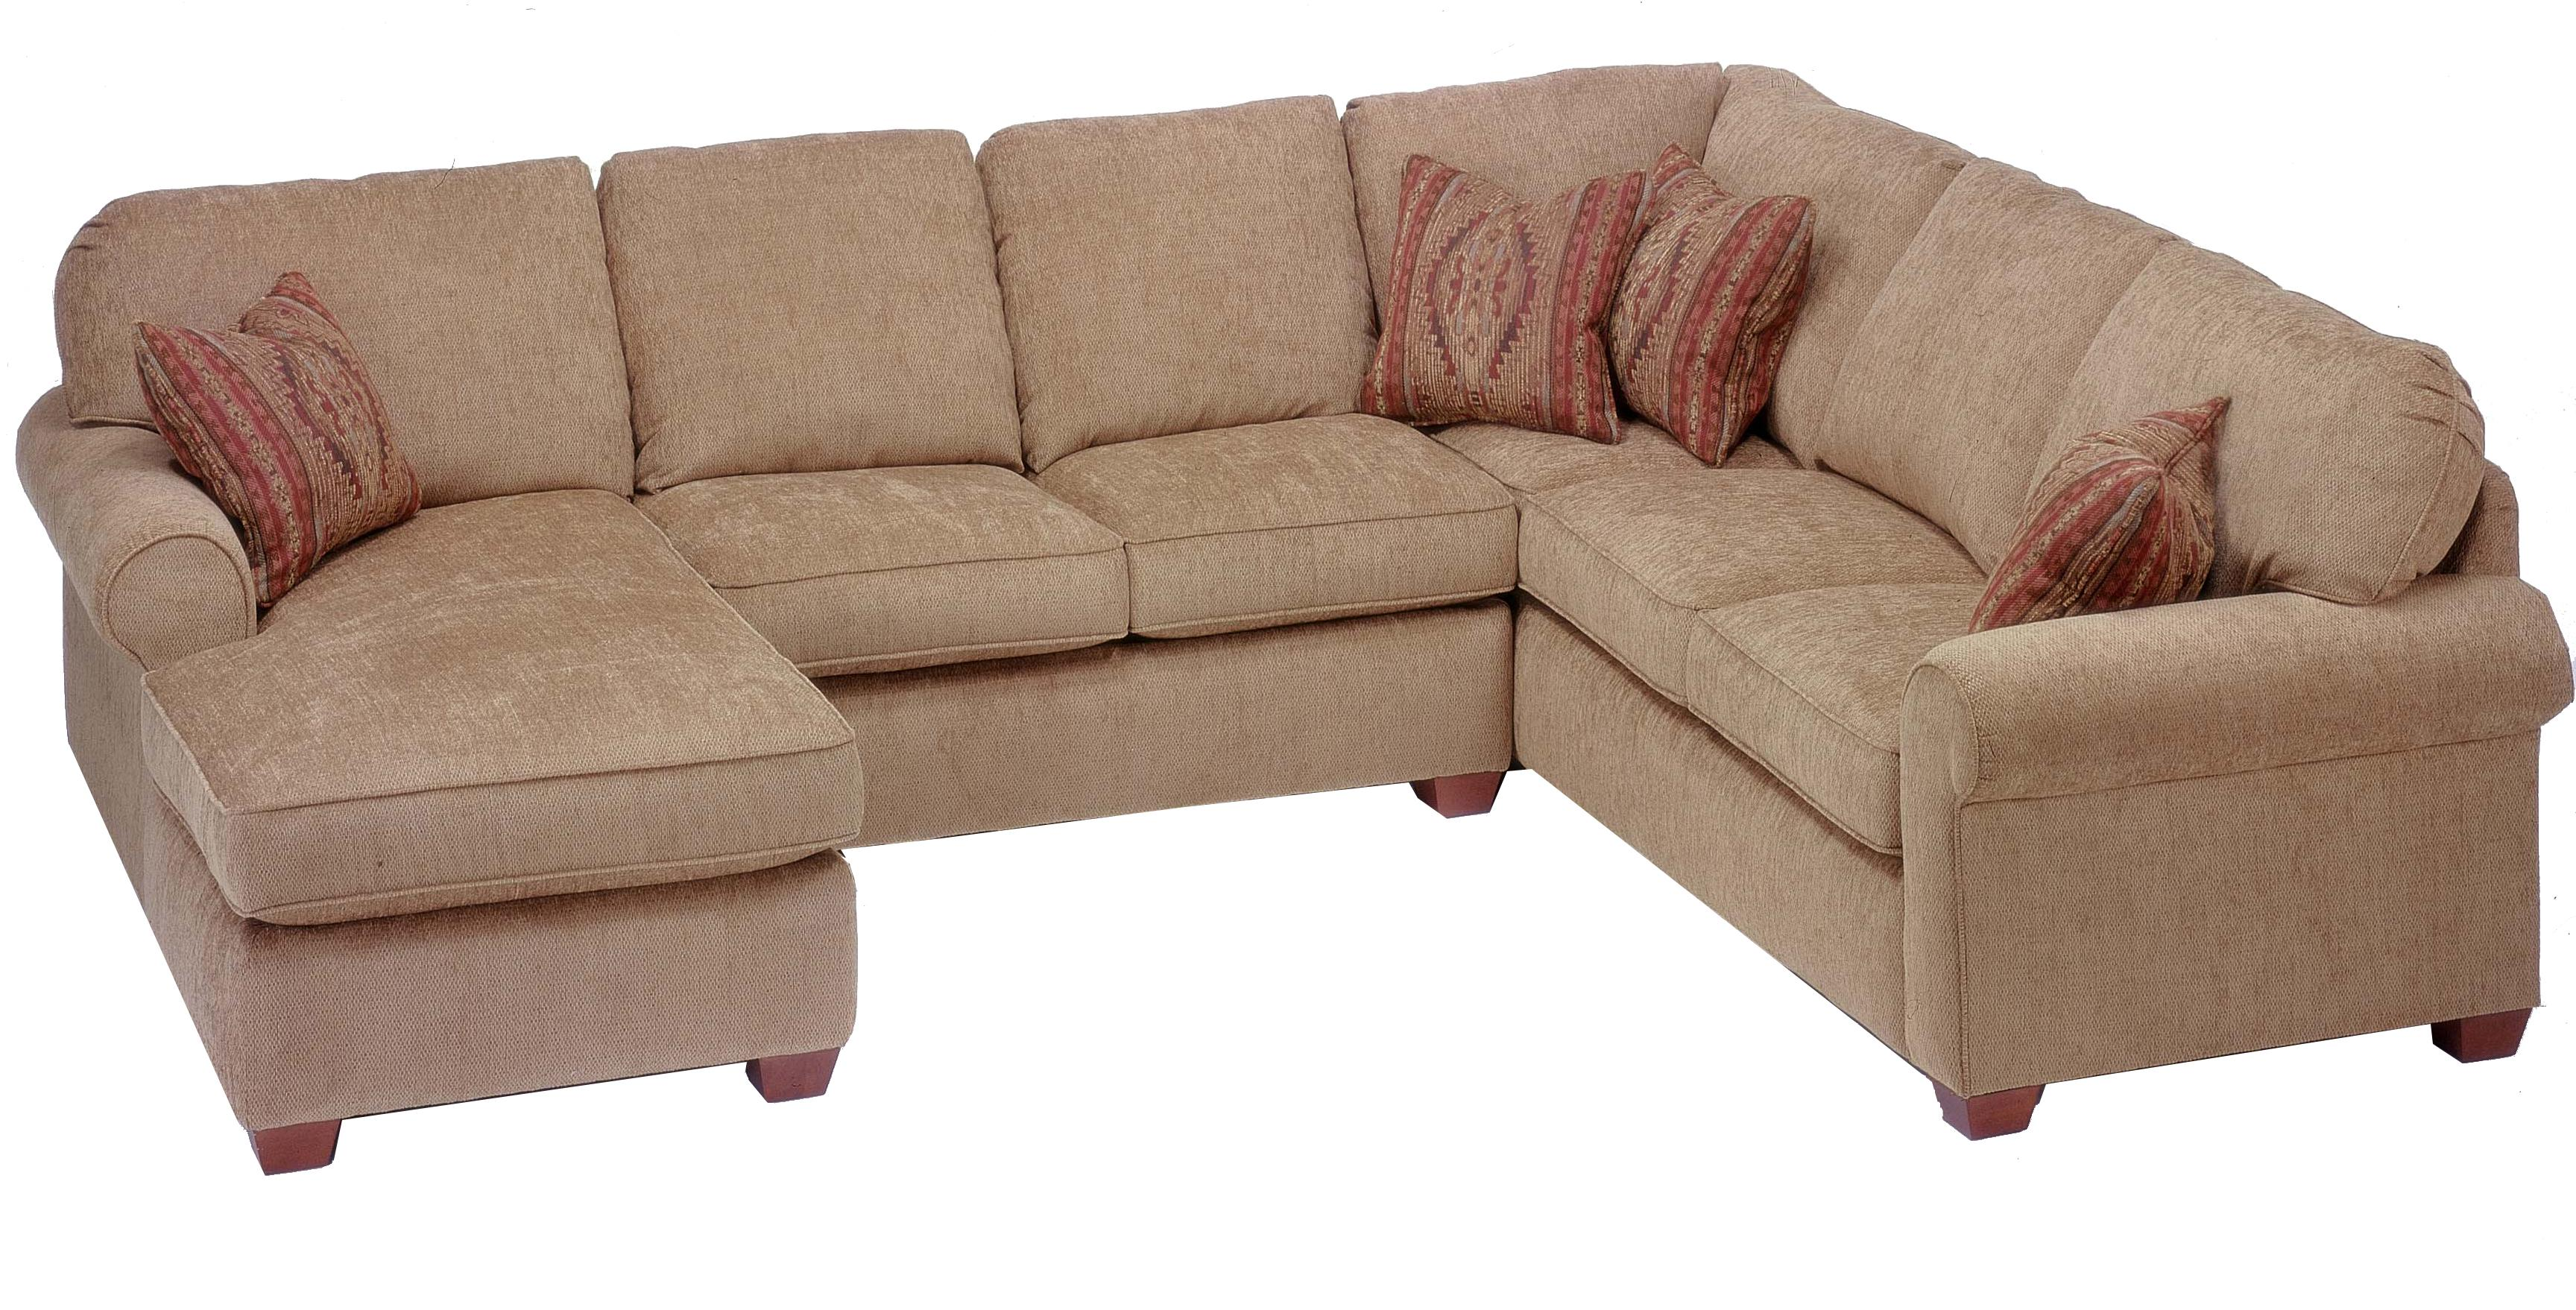 Flexsteel Thornton 3 Piece Sectional with Chaise - AHFA - Sofa Sectional Dealer Locator  sc 1 st  Furniture Dealer Locator - Find your furniture : alan white sectional - Sectionals, Sofas & Couches